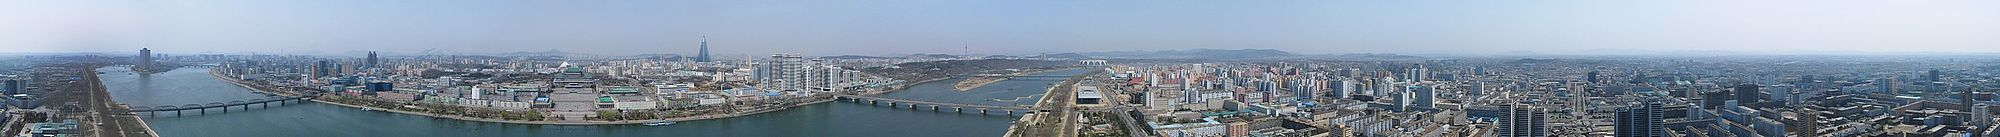 A panoramic view of Pyongyang from atop the Juche tower